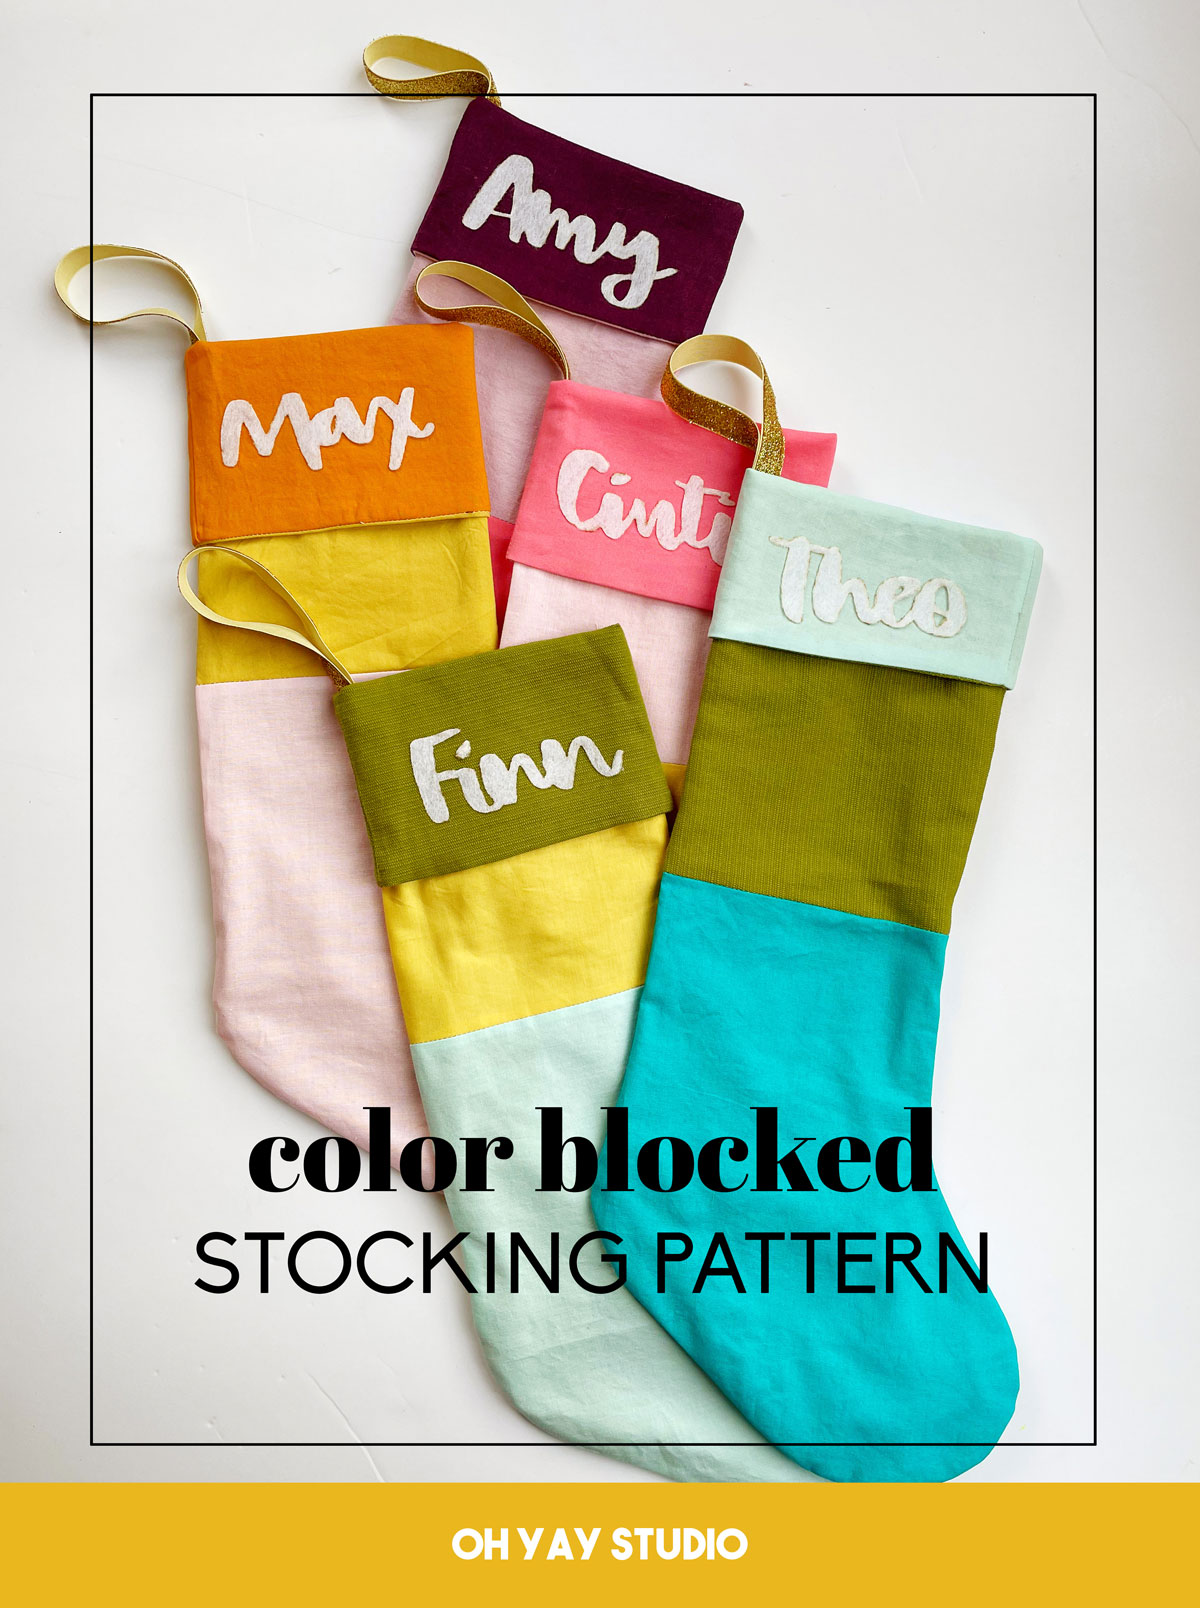 color blocked stocking pattern, how to make a color blocked stocking, janome sewing machine, stocking sewing pattern, colorful stocking, free sewing pattern